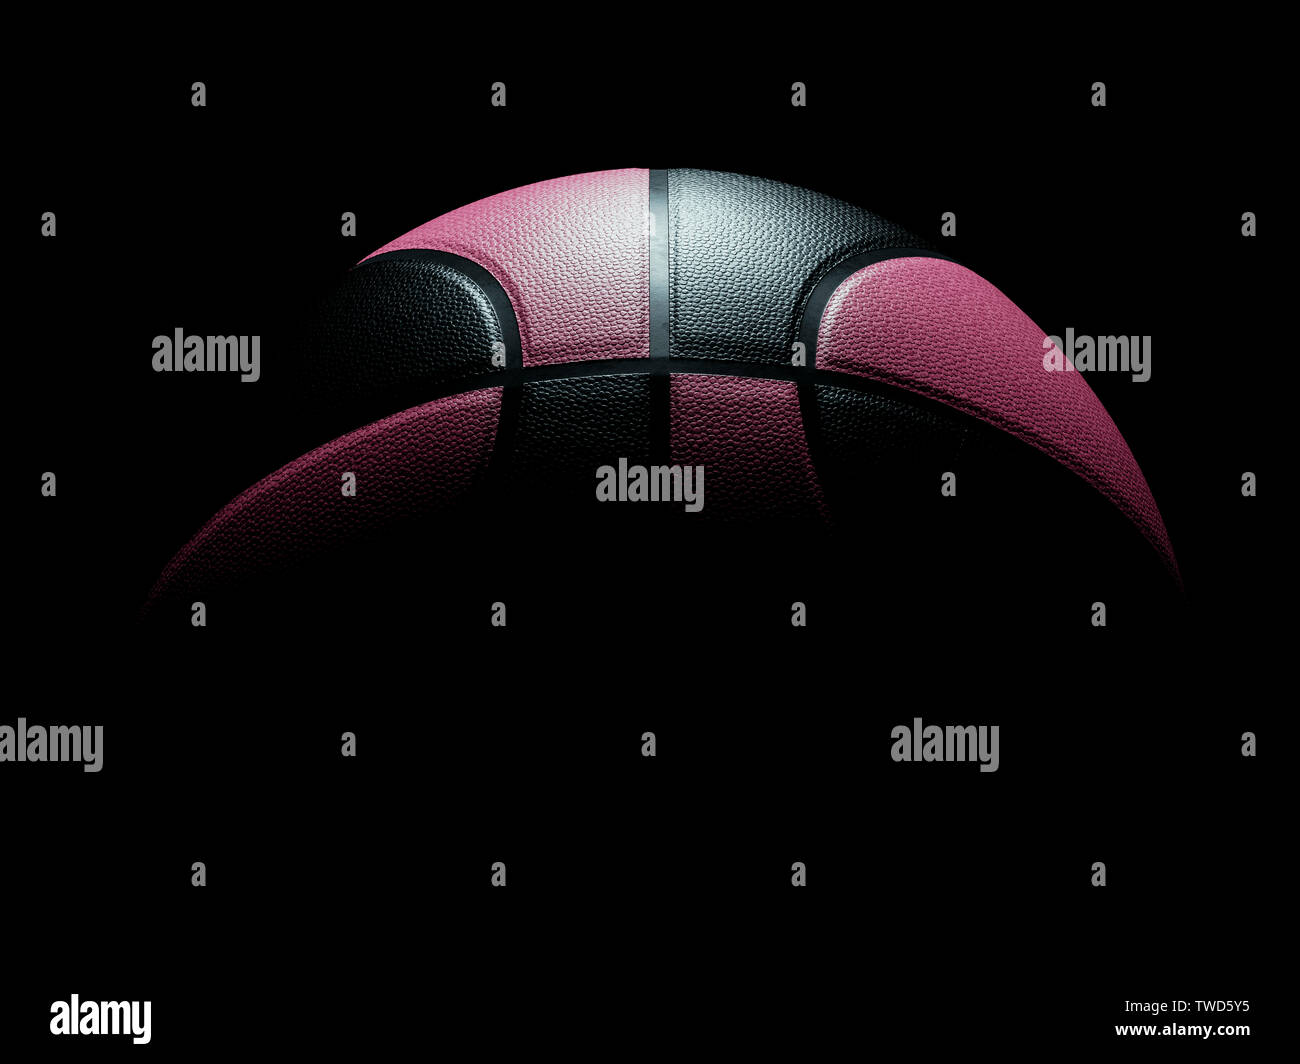 Pink And Black Colored Single Basketball For Women Or Men Sitting On Black Background Light Shining Directly On Basketball From Top Wallpaper Stock Photo Alamy